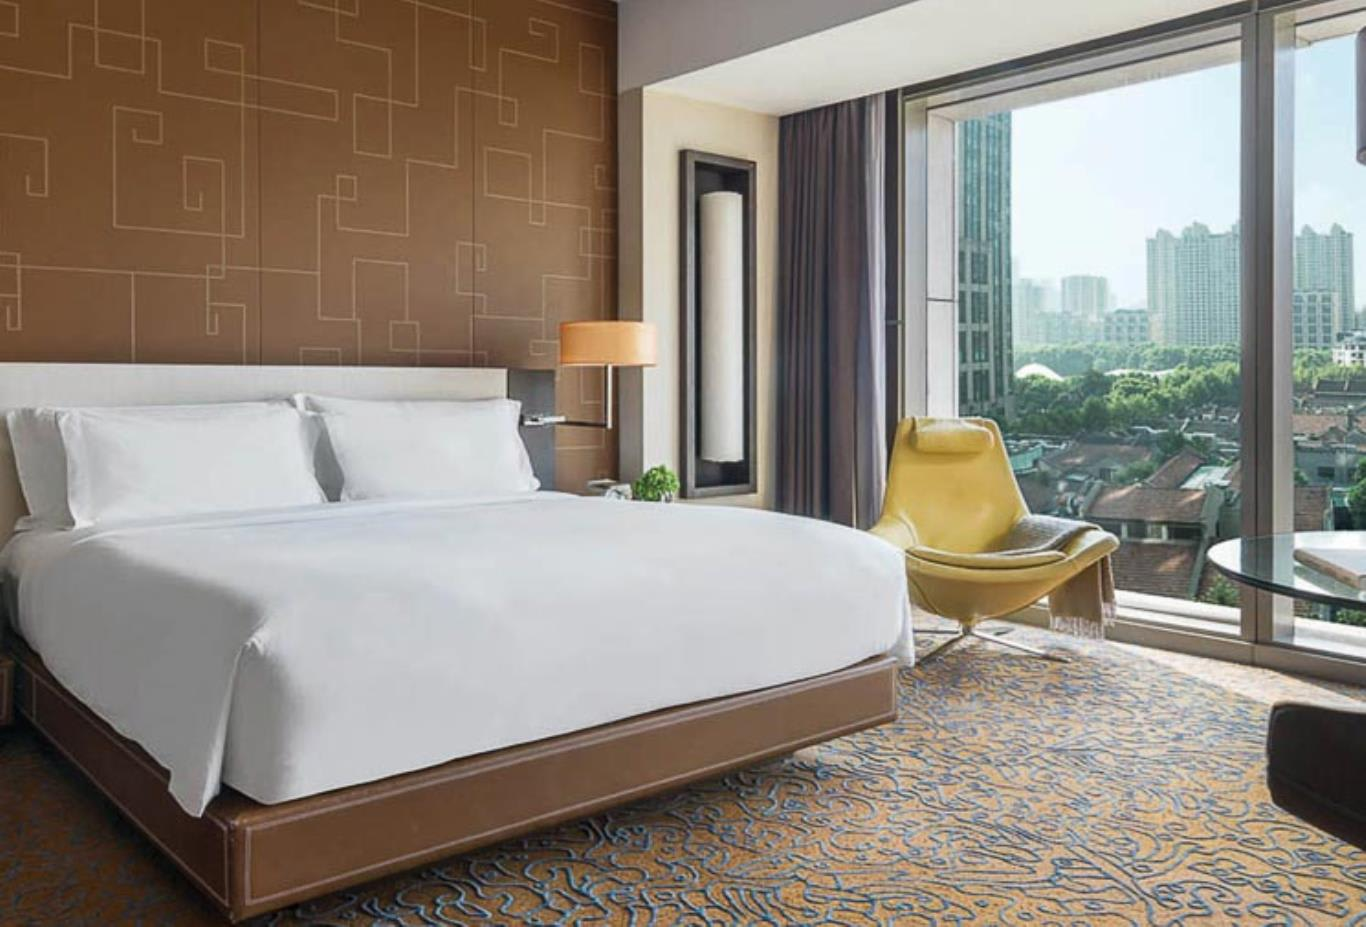 Superior, Deluxe & Executive Room